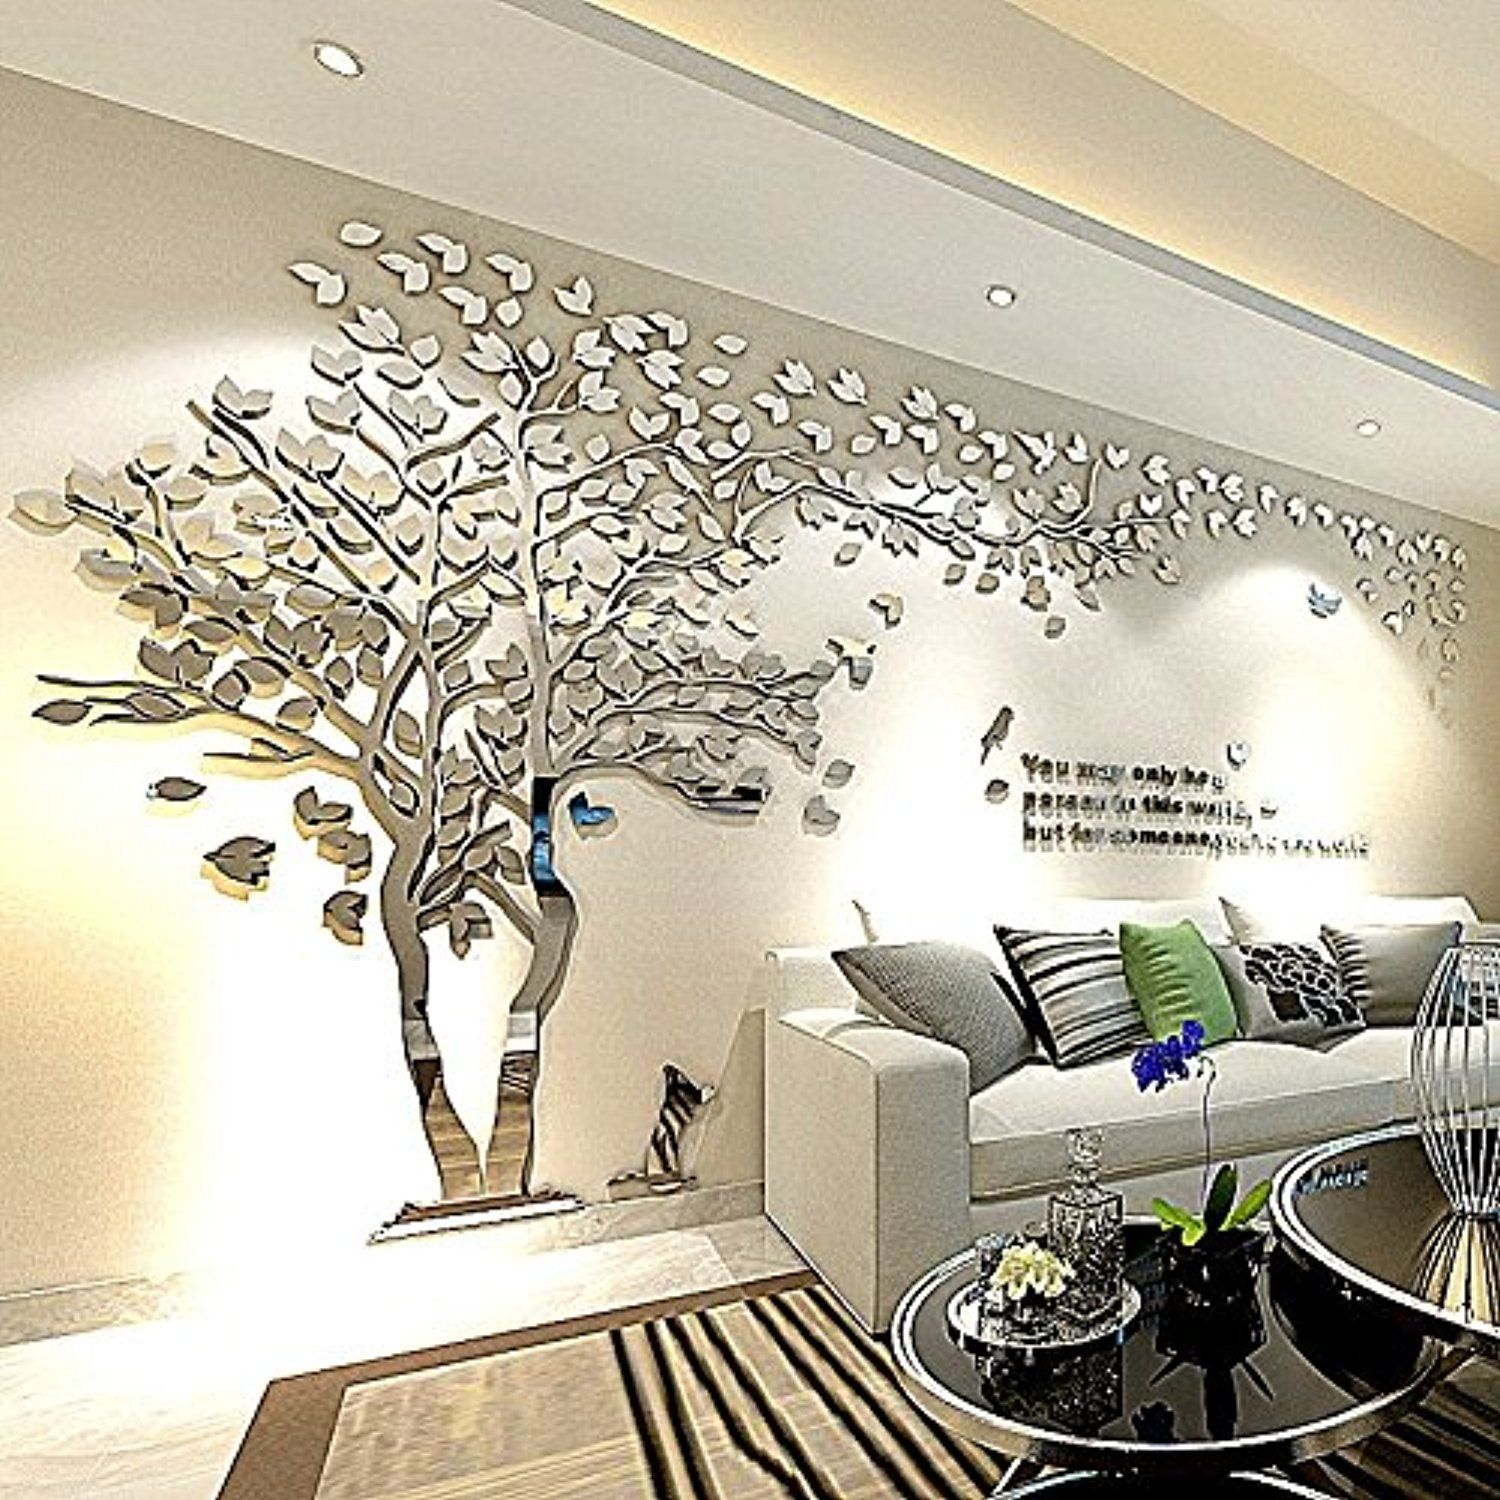 Tree Birds 3d Wall Decals For Living Room Wall Murals Stickerstattoos For Wall Decor Home Decor S Wall Stickers Living Room Wall Stickers Home Decor Warm Decor